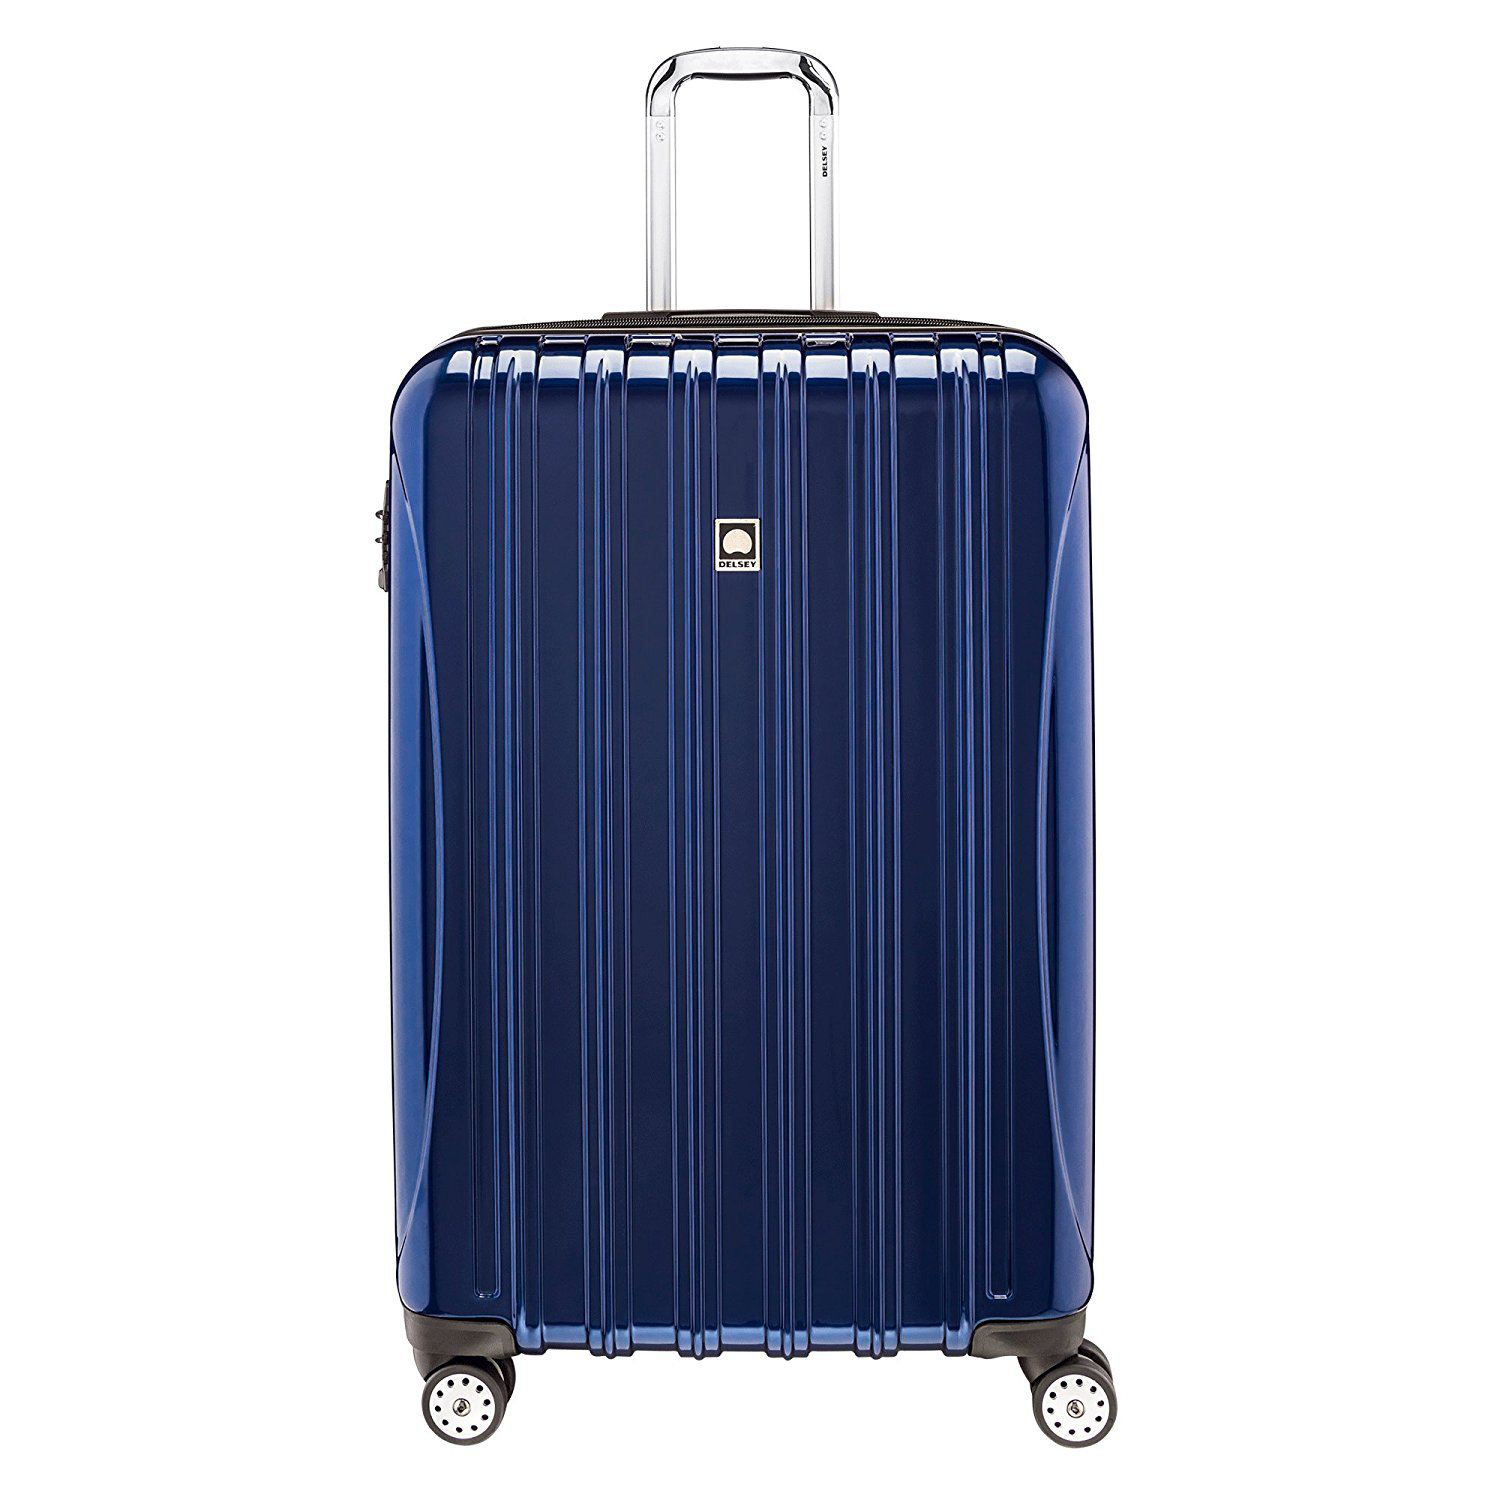 431b90e57 Best Overall: Delsey Luggage Helium Aero Expandable Spinner Trolley  (29-Inch)